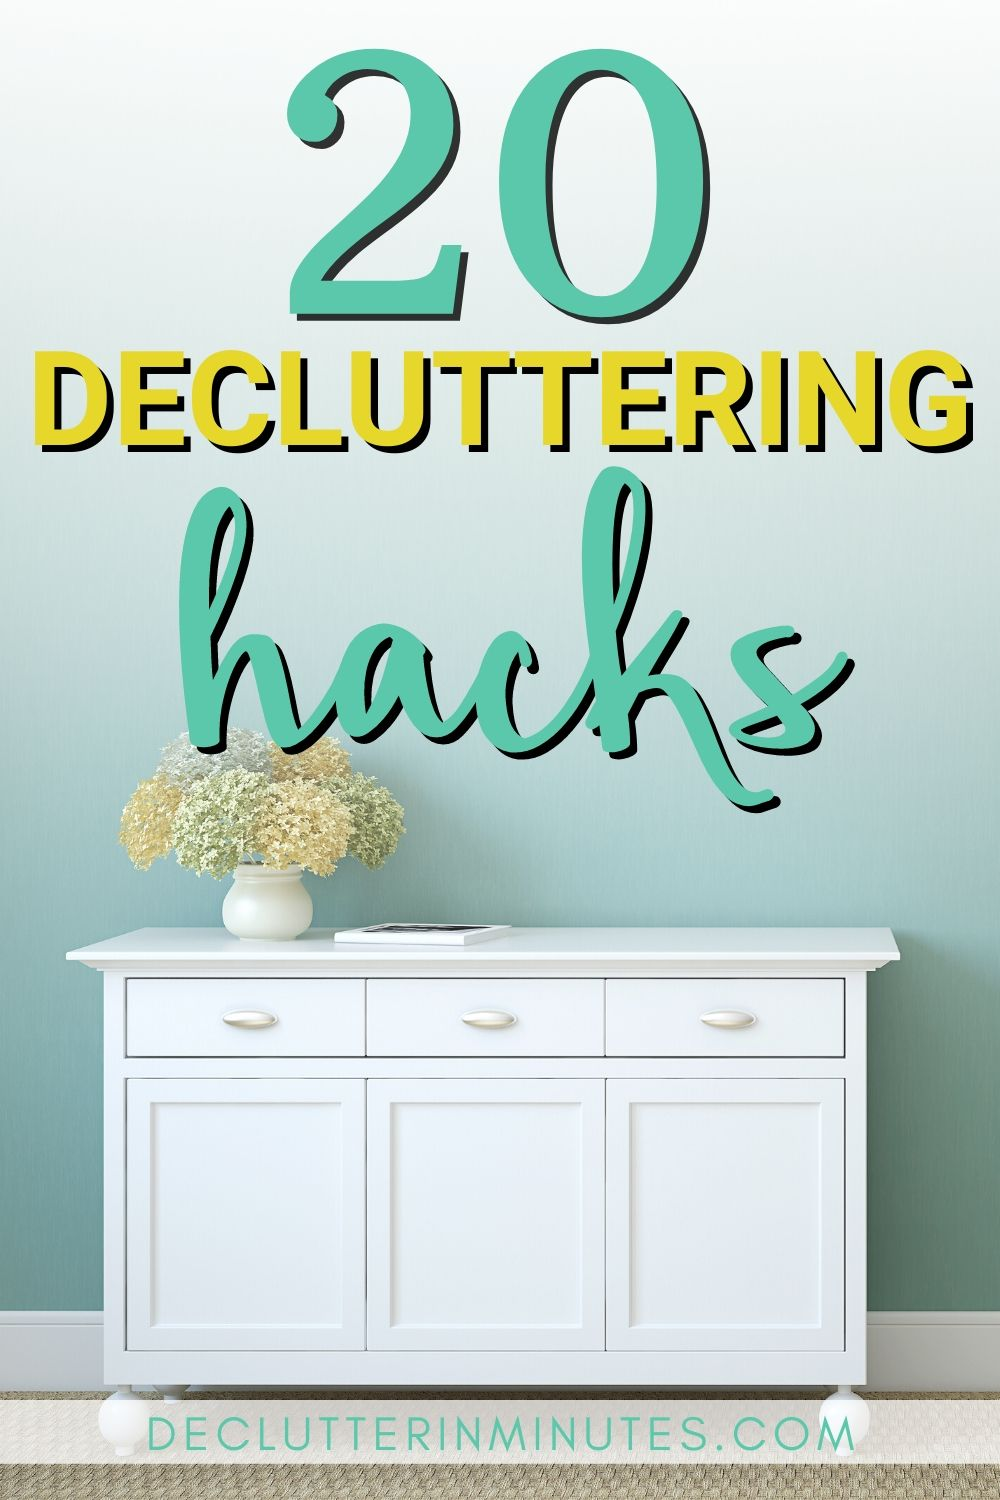 There is nothing I love better than a shortcut. Especially when it comes to keeping a clutter-free and organized home. Wish there was a list of secrets you could turn to so you can finally clean out your home and organize it once and for all? Well, there is and this is it. Get 20 secrets of decluttering that will help you create a clutter-free and organized home once and for all. Simple decluttering tips you can use today and easy organizing tasks to streamline your home once and for all. #organizingsecrets #organize #declutter #declutterinminutes